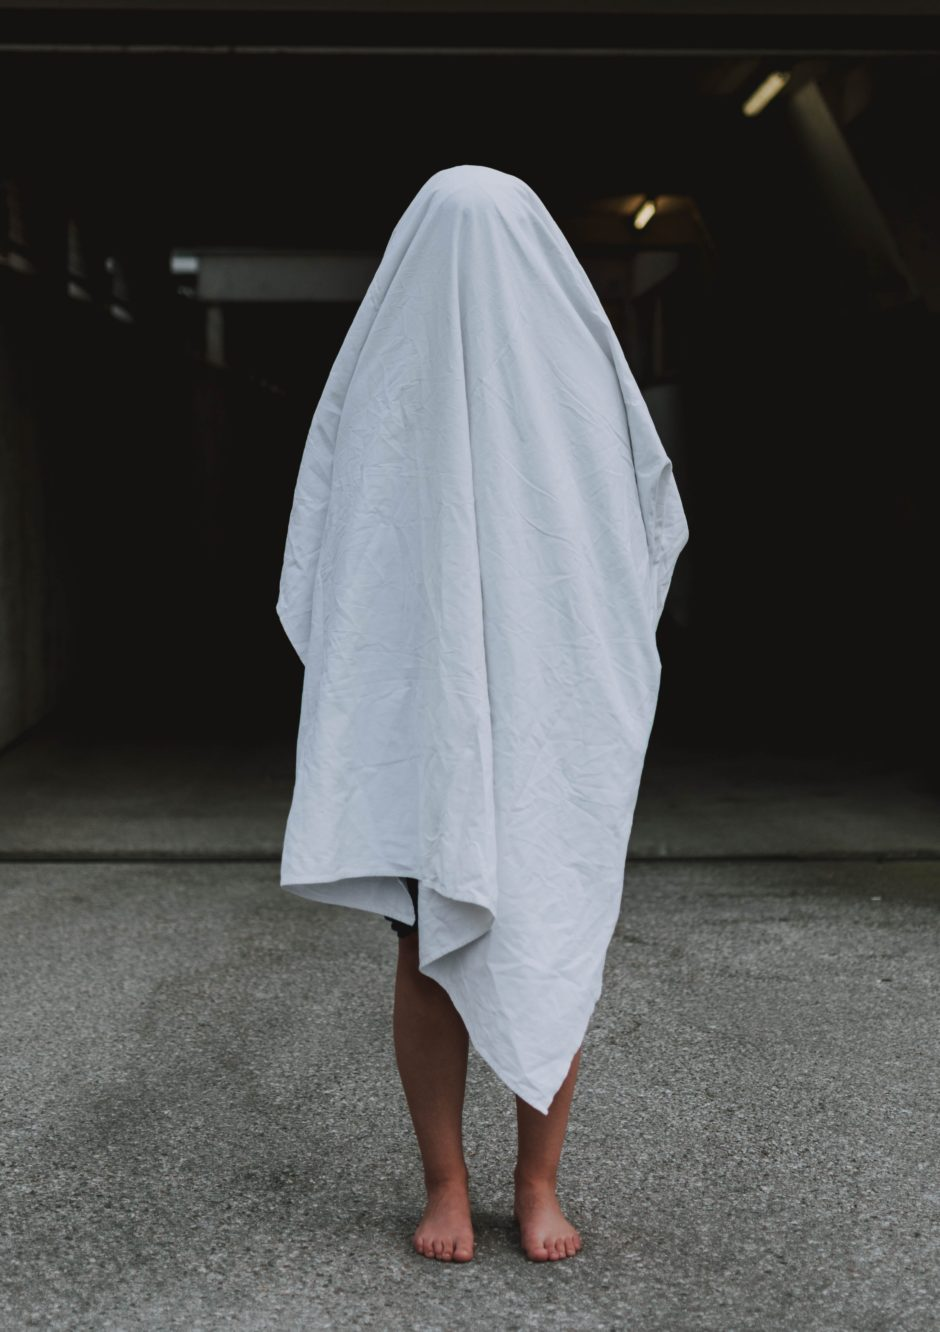 Person covered with a white sheet